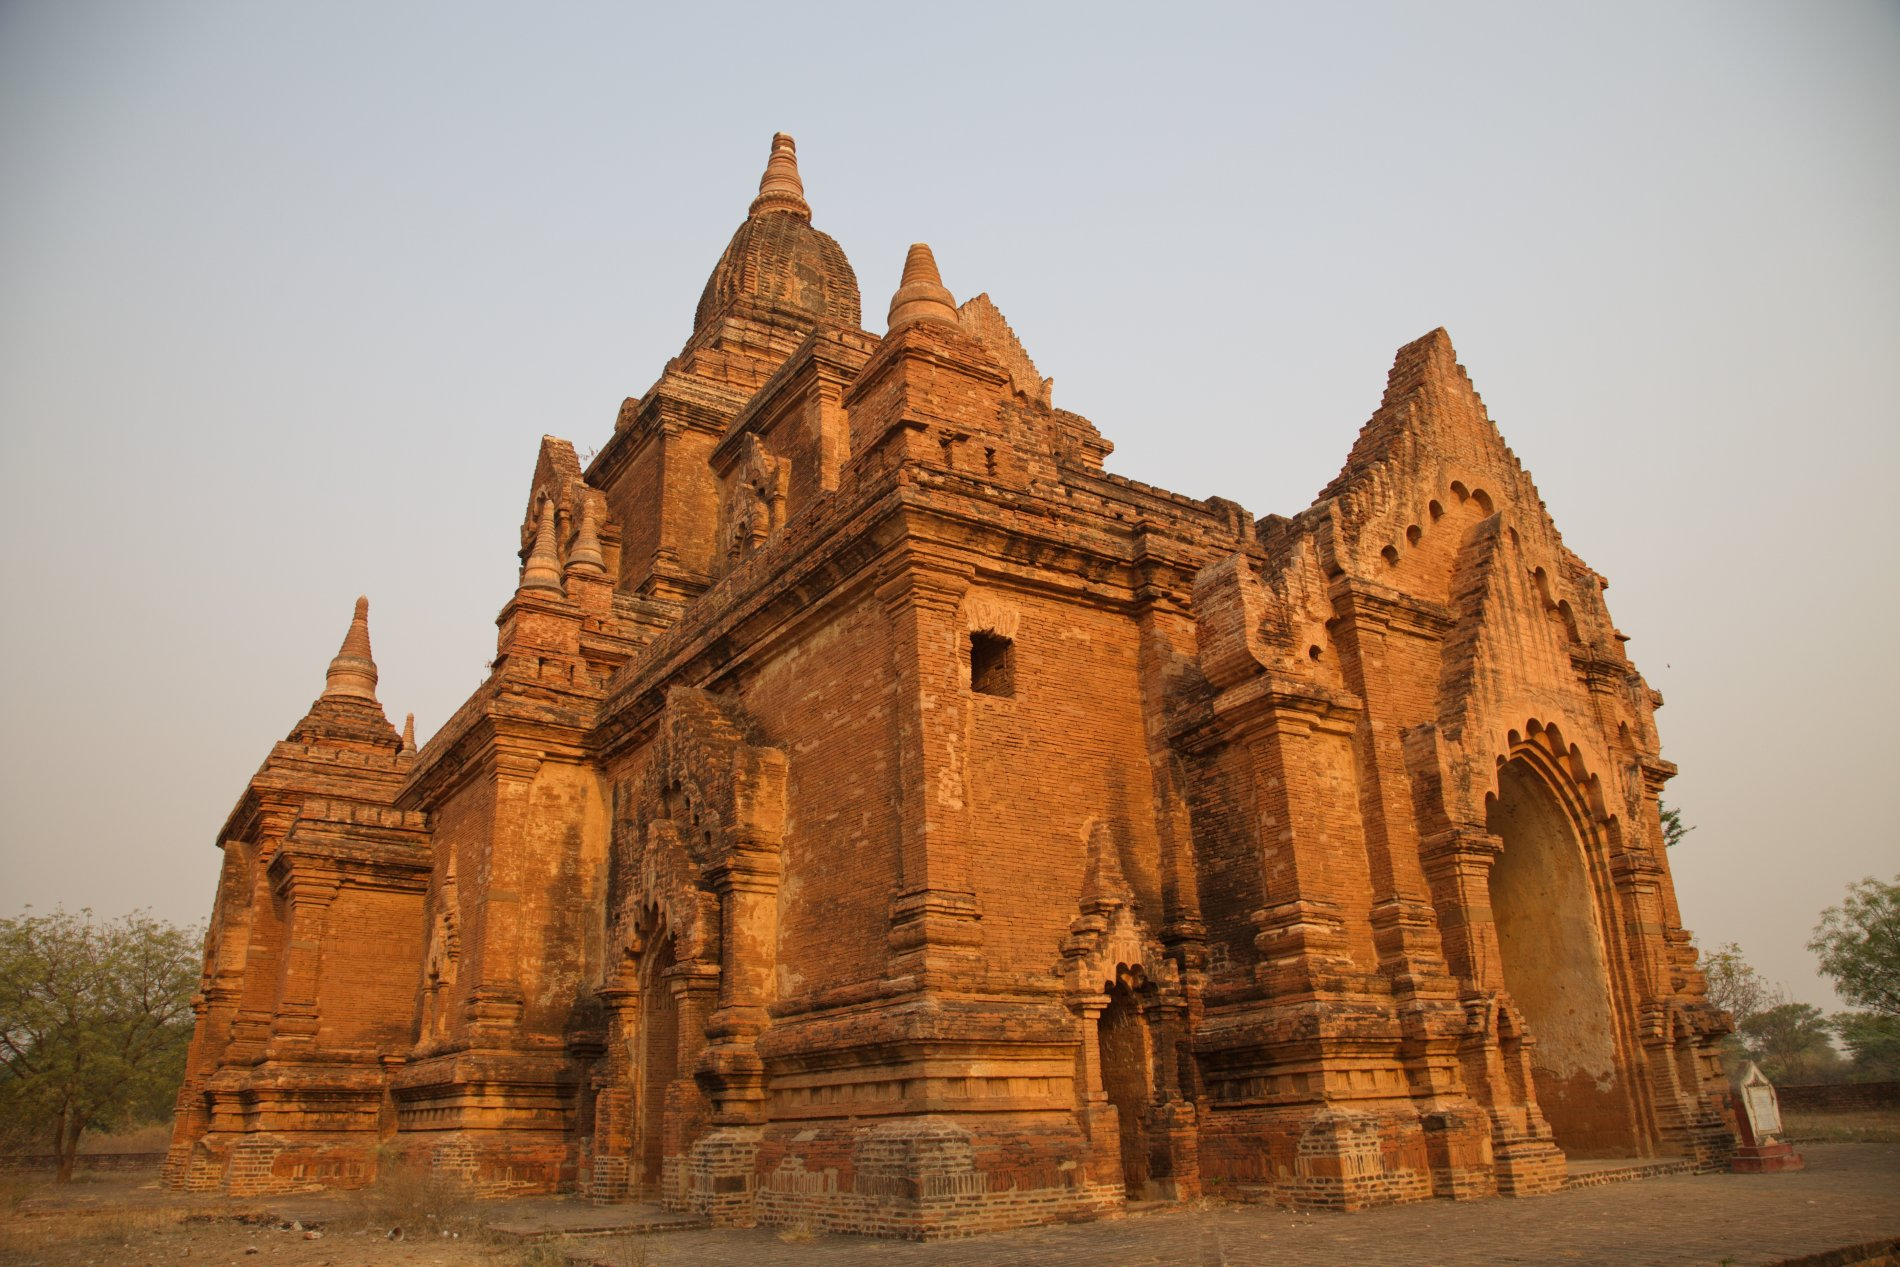 Bagan_057.jpg-commment